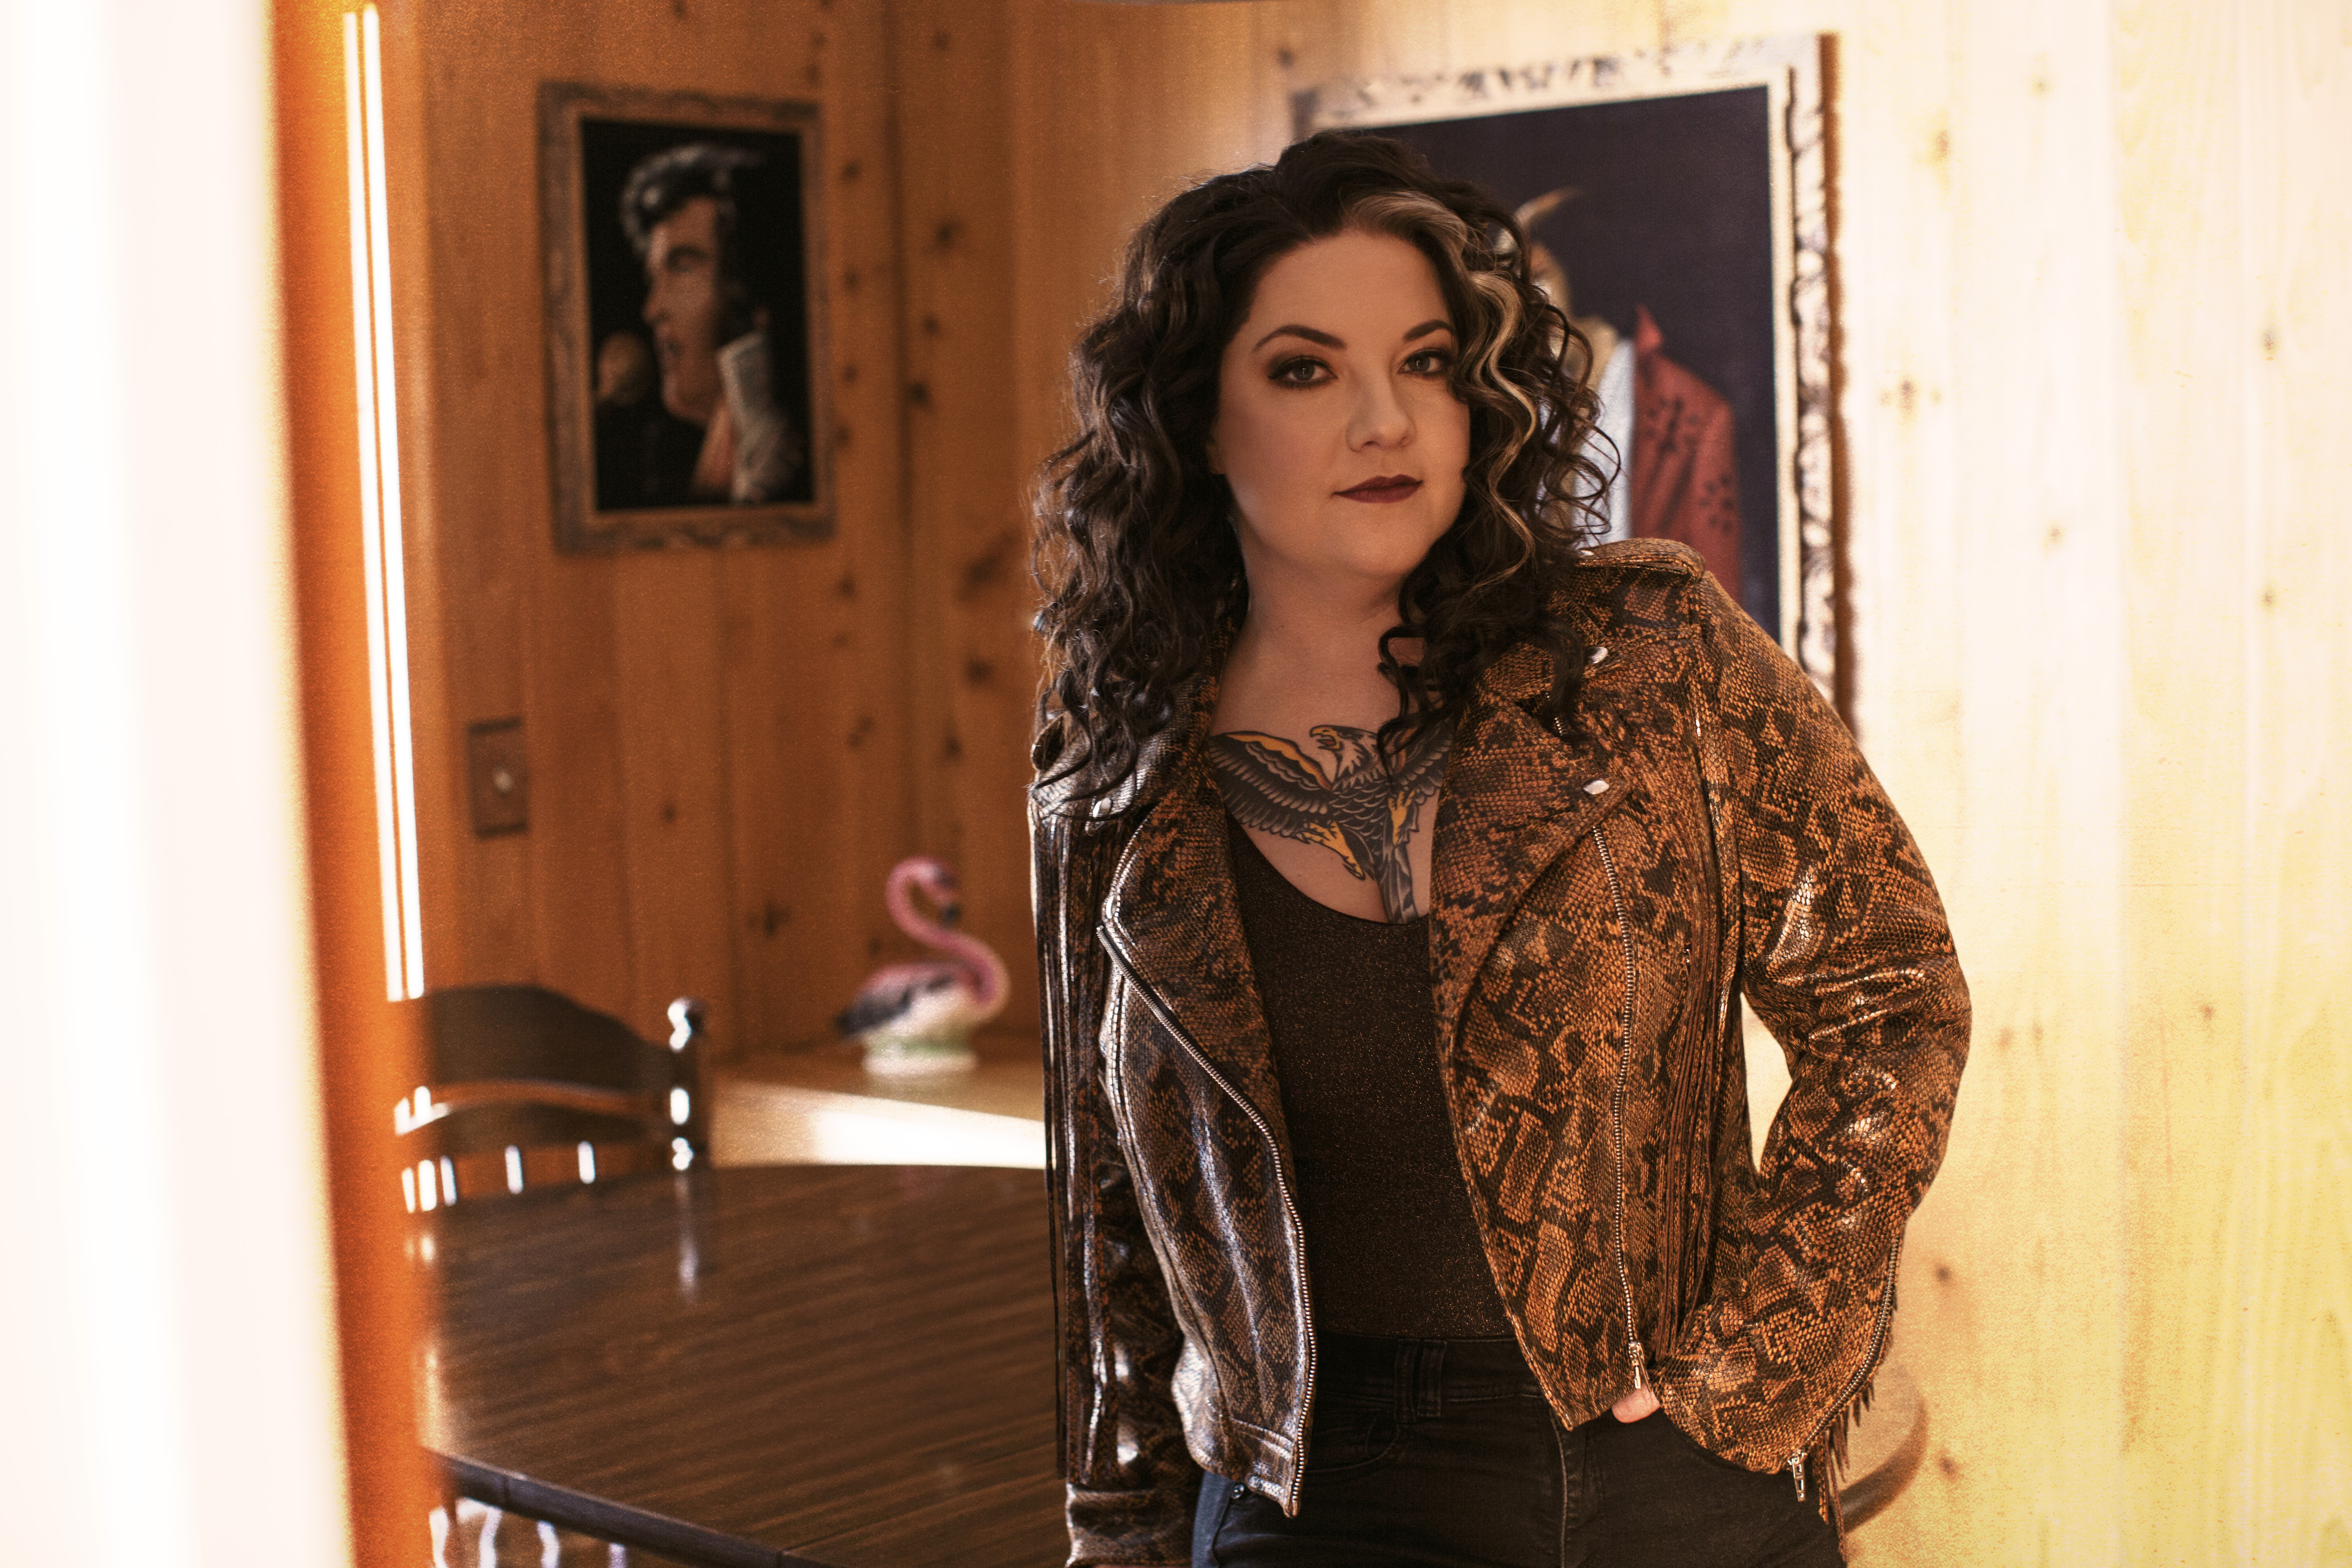 Ashley McBryde Earns Four Nominations from The Academy of Country Music